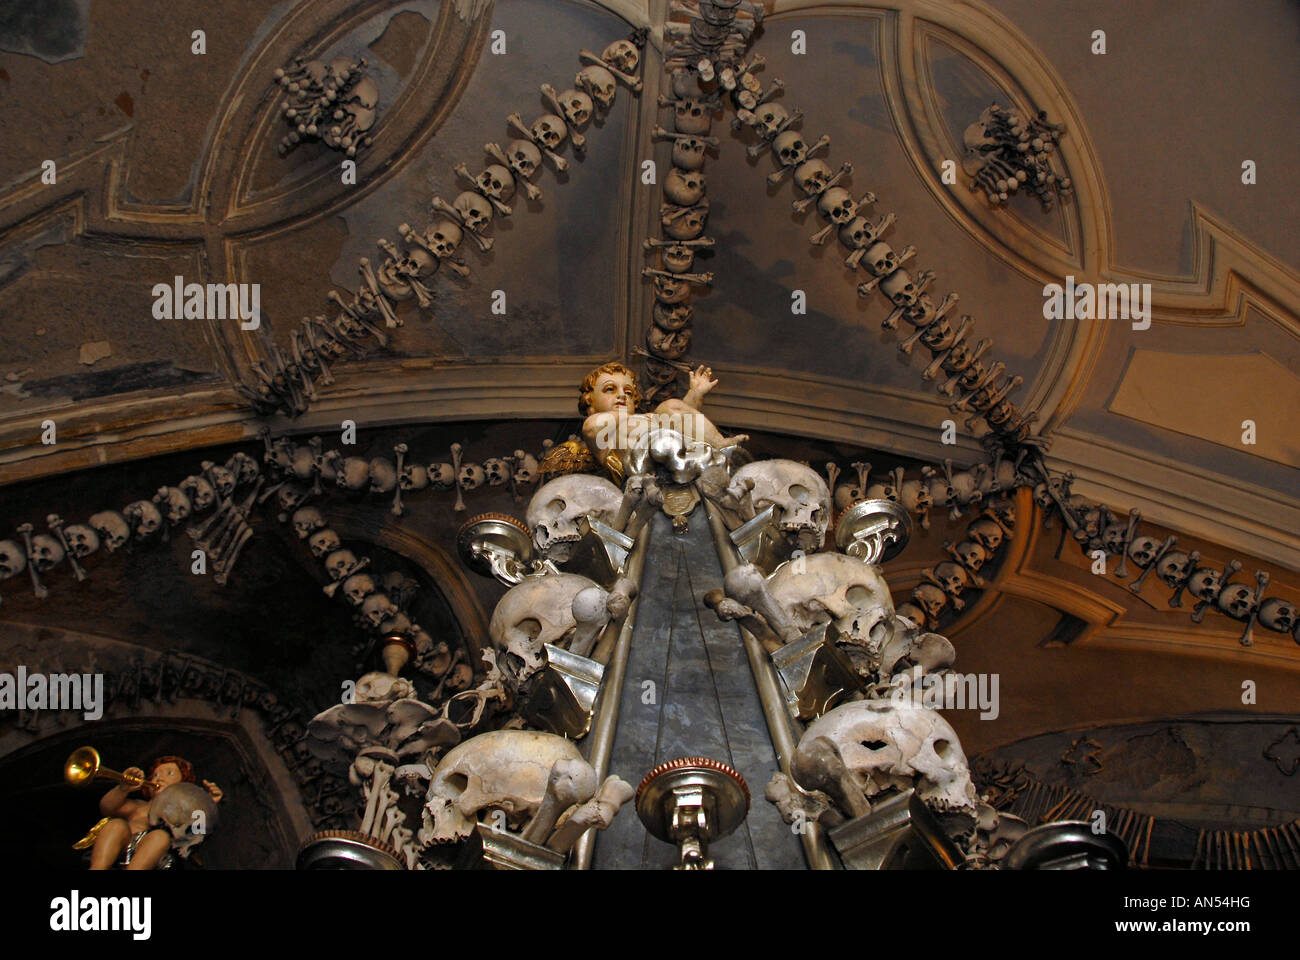 Chandelier made of human bones and skulls at the charnel house or chandelier made of human bones and skulls at the charnel house or ossuary kostnice bone chapel in kutna hora czech republic aloadofball Image collections